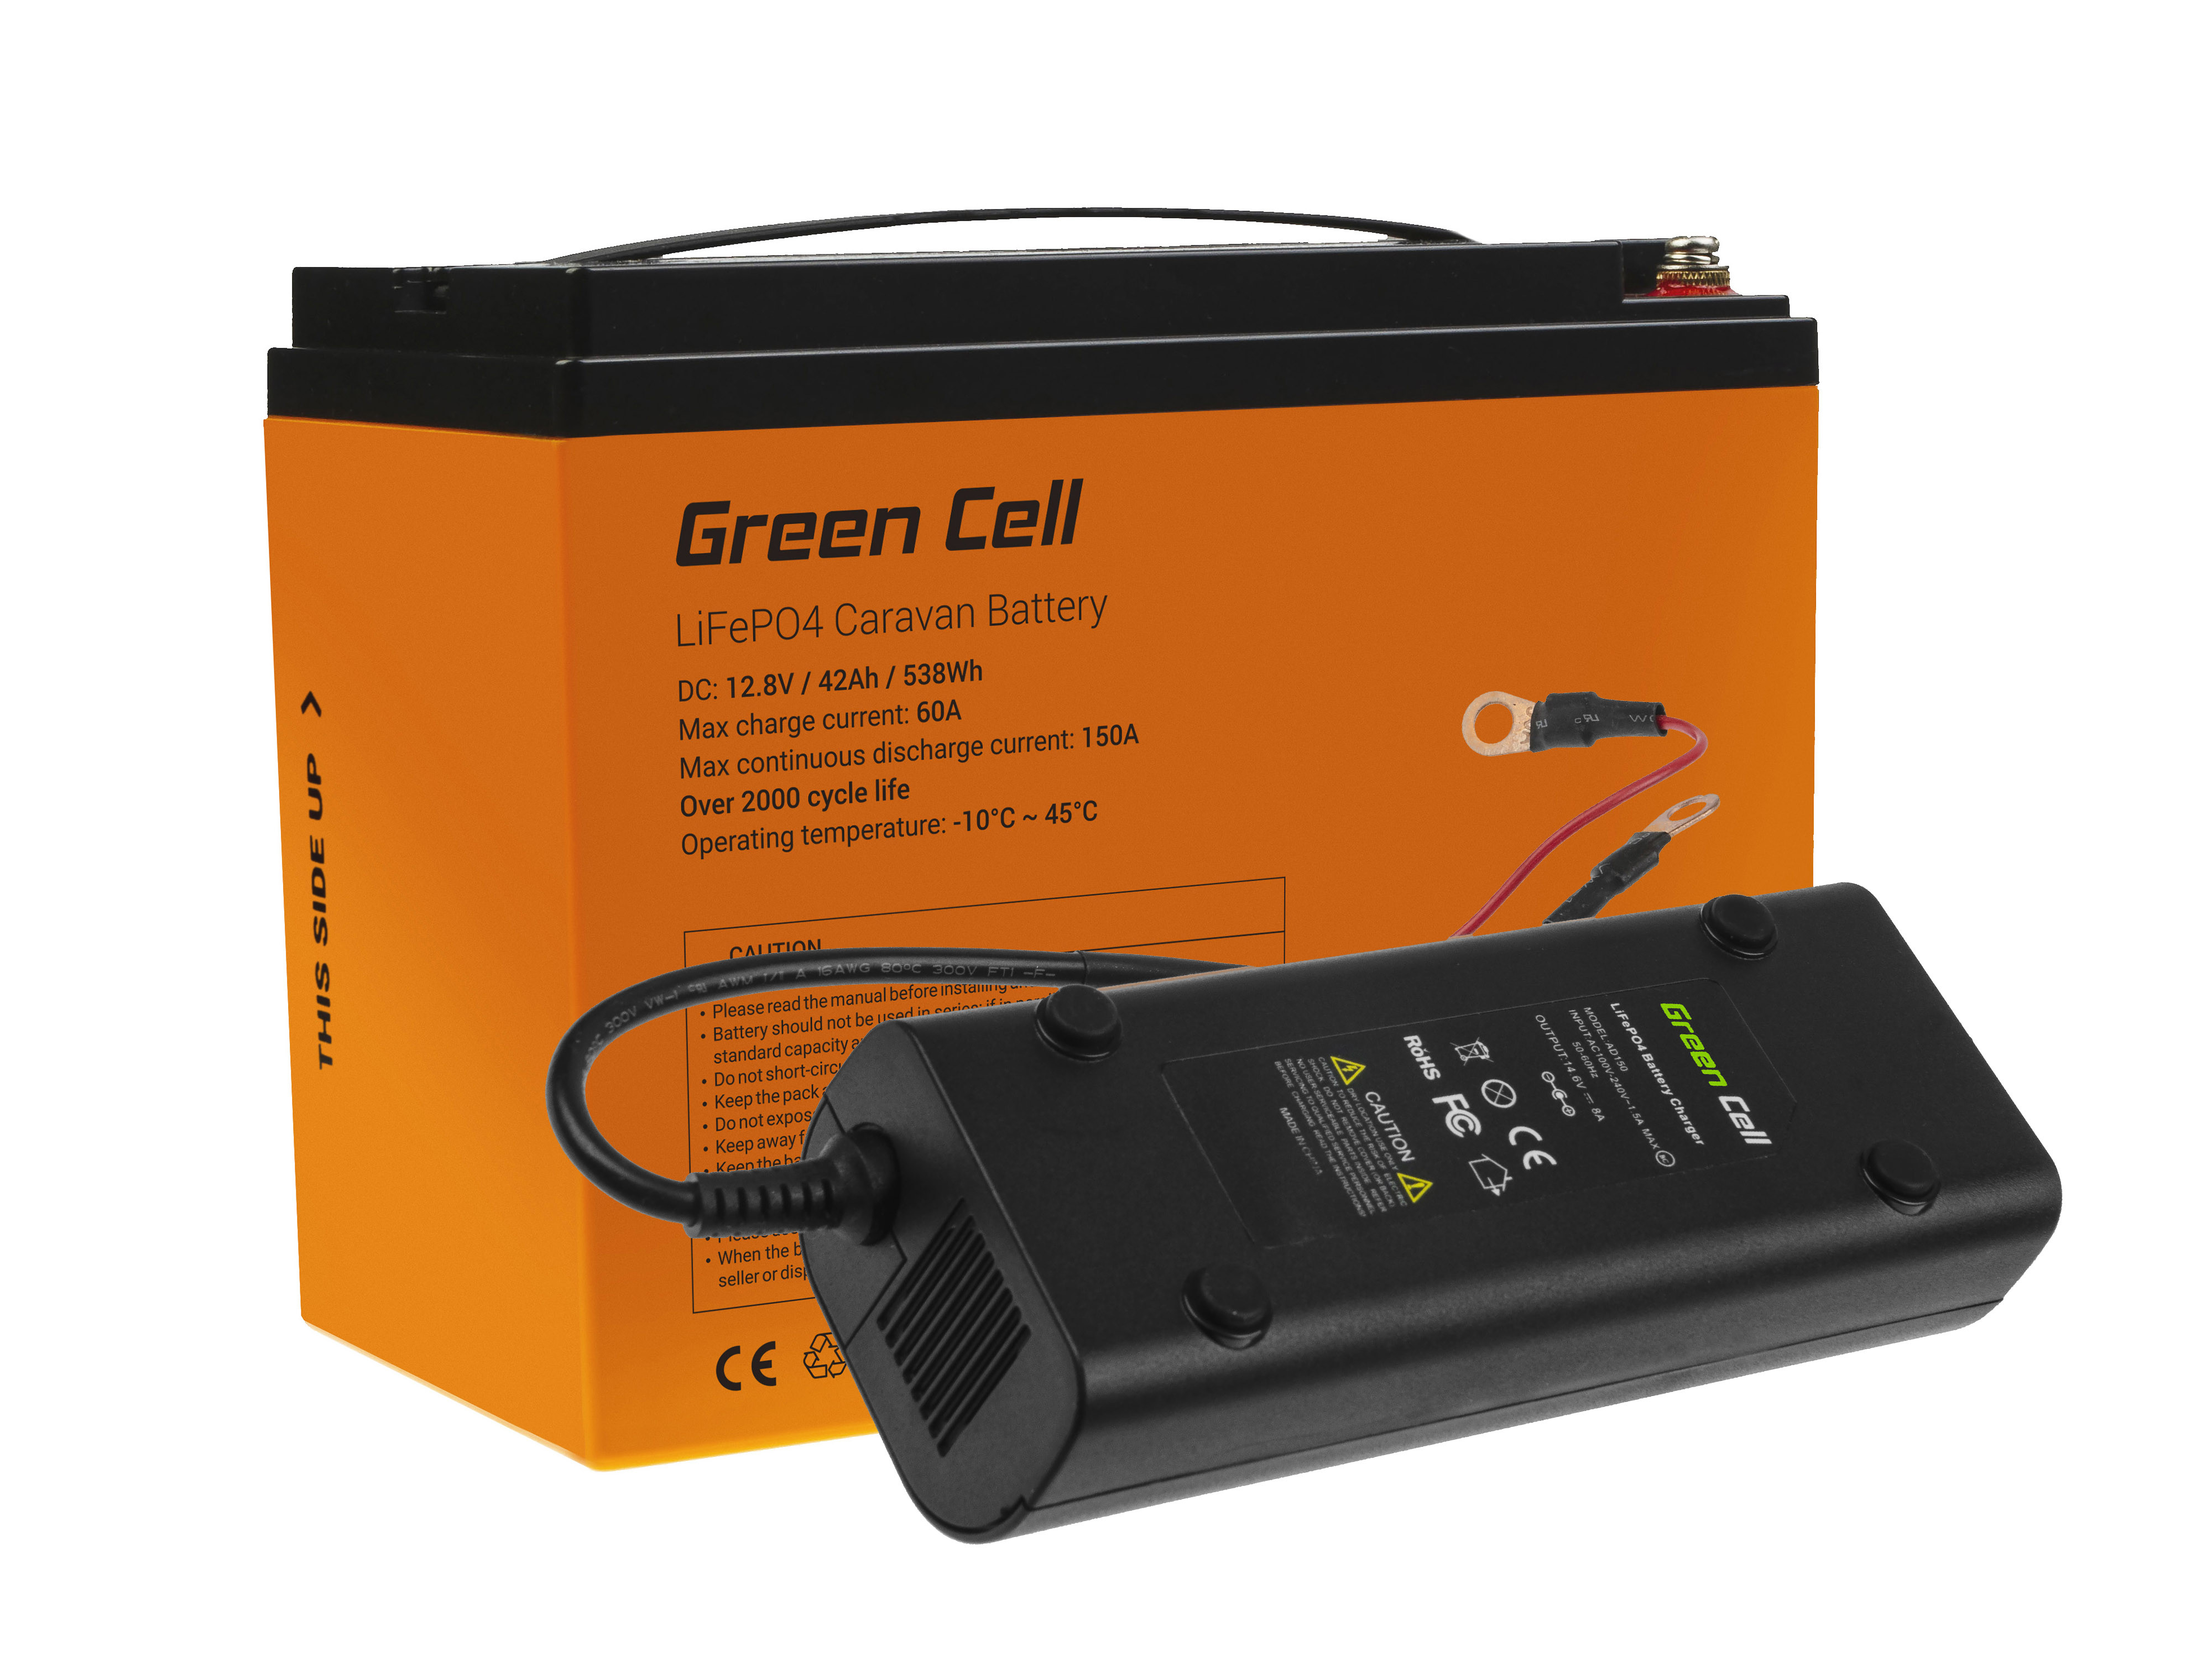 Green Cell LiFePO4 battery 42Ah 12.8V 538Wh lithium iron phosphate battery photovoltaic system